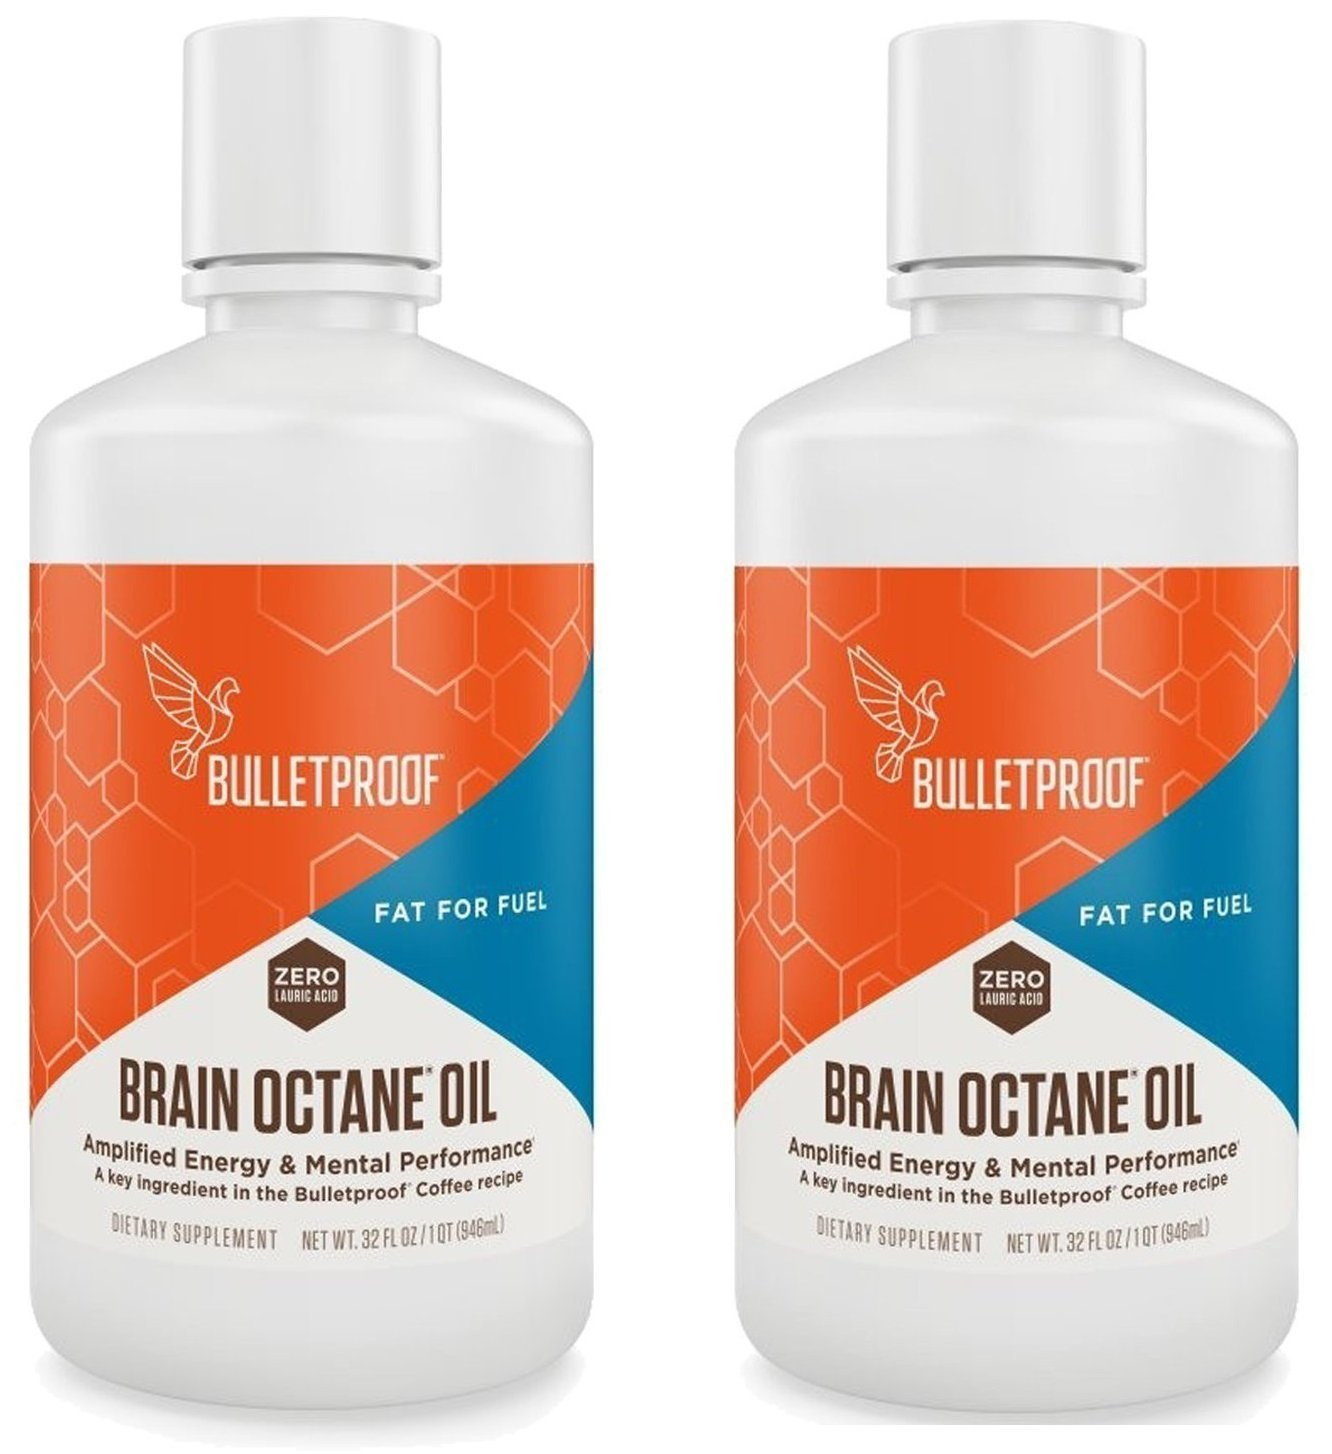 Bulletproof Brain Octane Oil 32oz (Pack of 2)